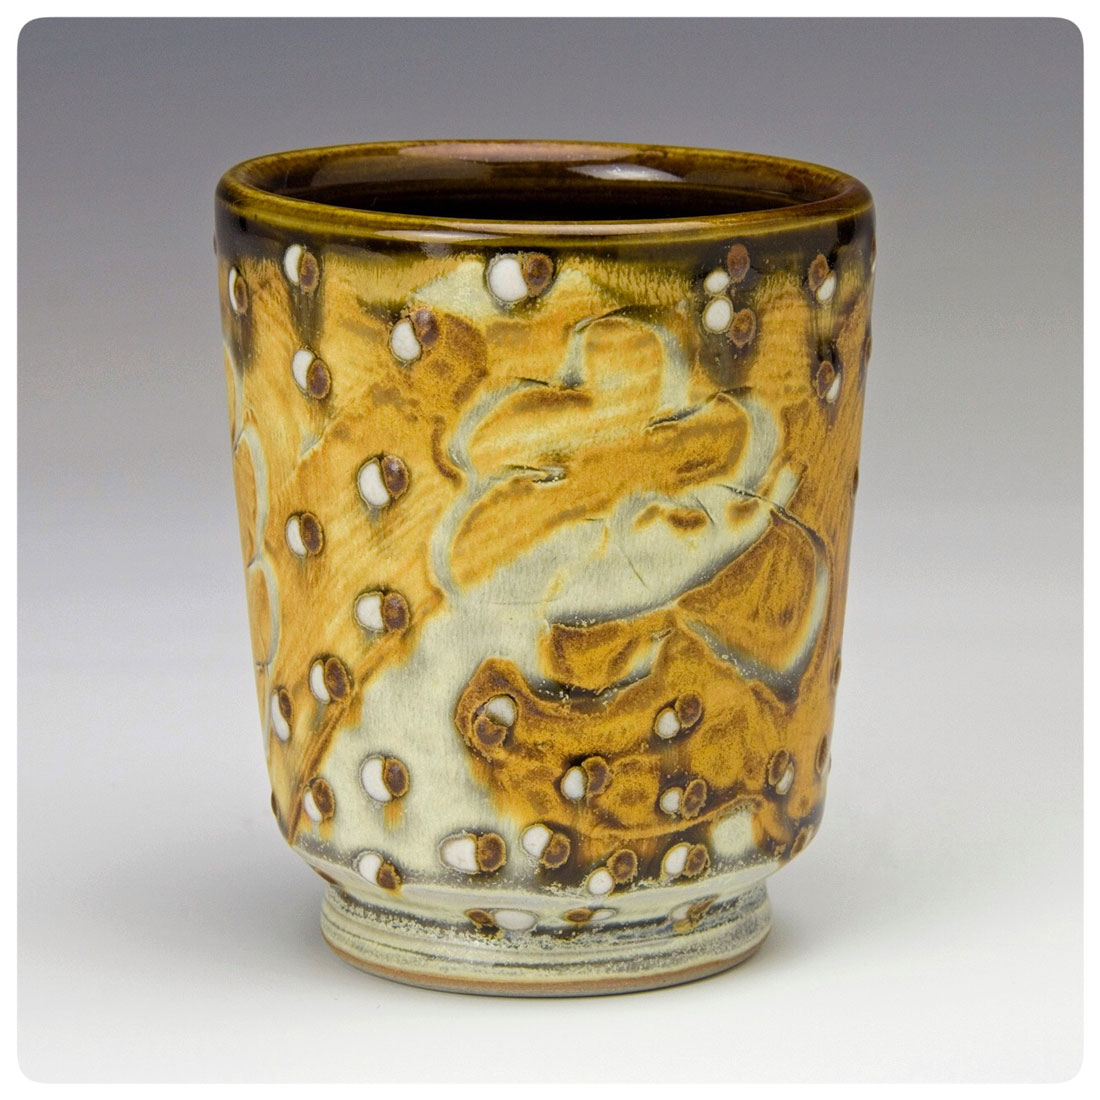 Drinking Cup with brush and dotted pattern made by Samantha Henneke | Bulldog Pottery |Seagrove | North Carolina